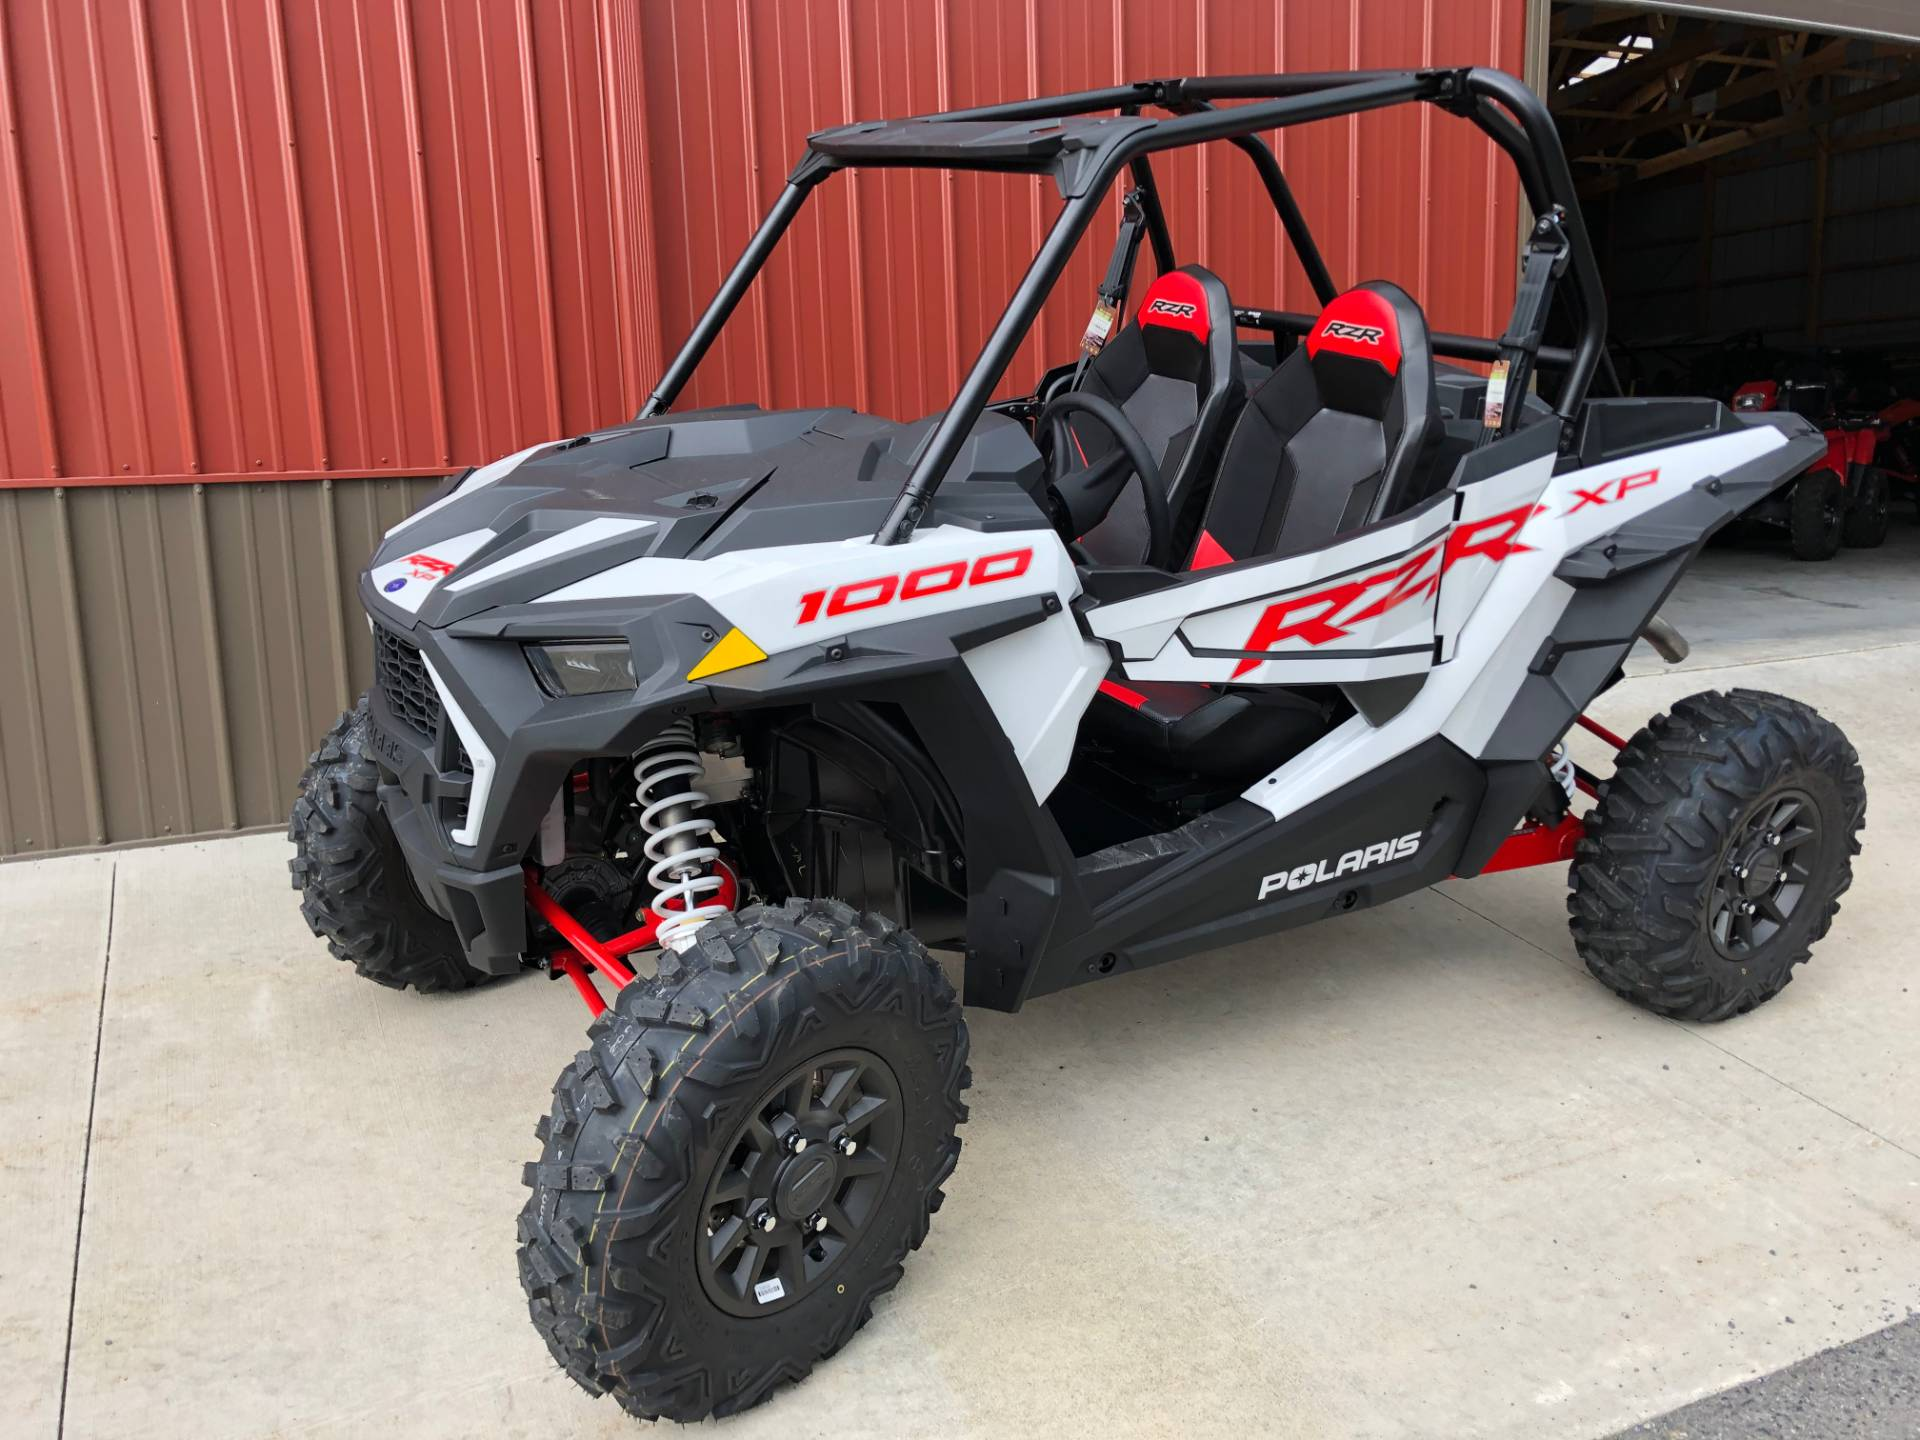 2020 Polaris RZR XP 1000 in Tyrone, Pennsylvania - Photo 1